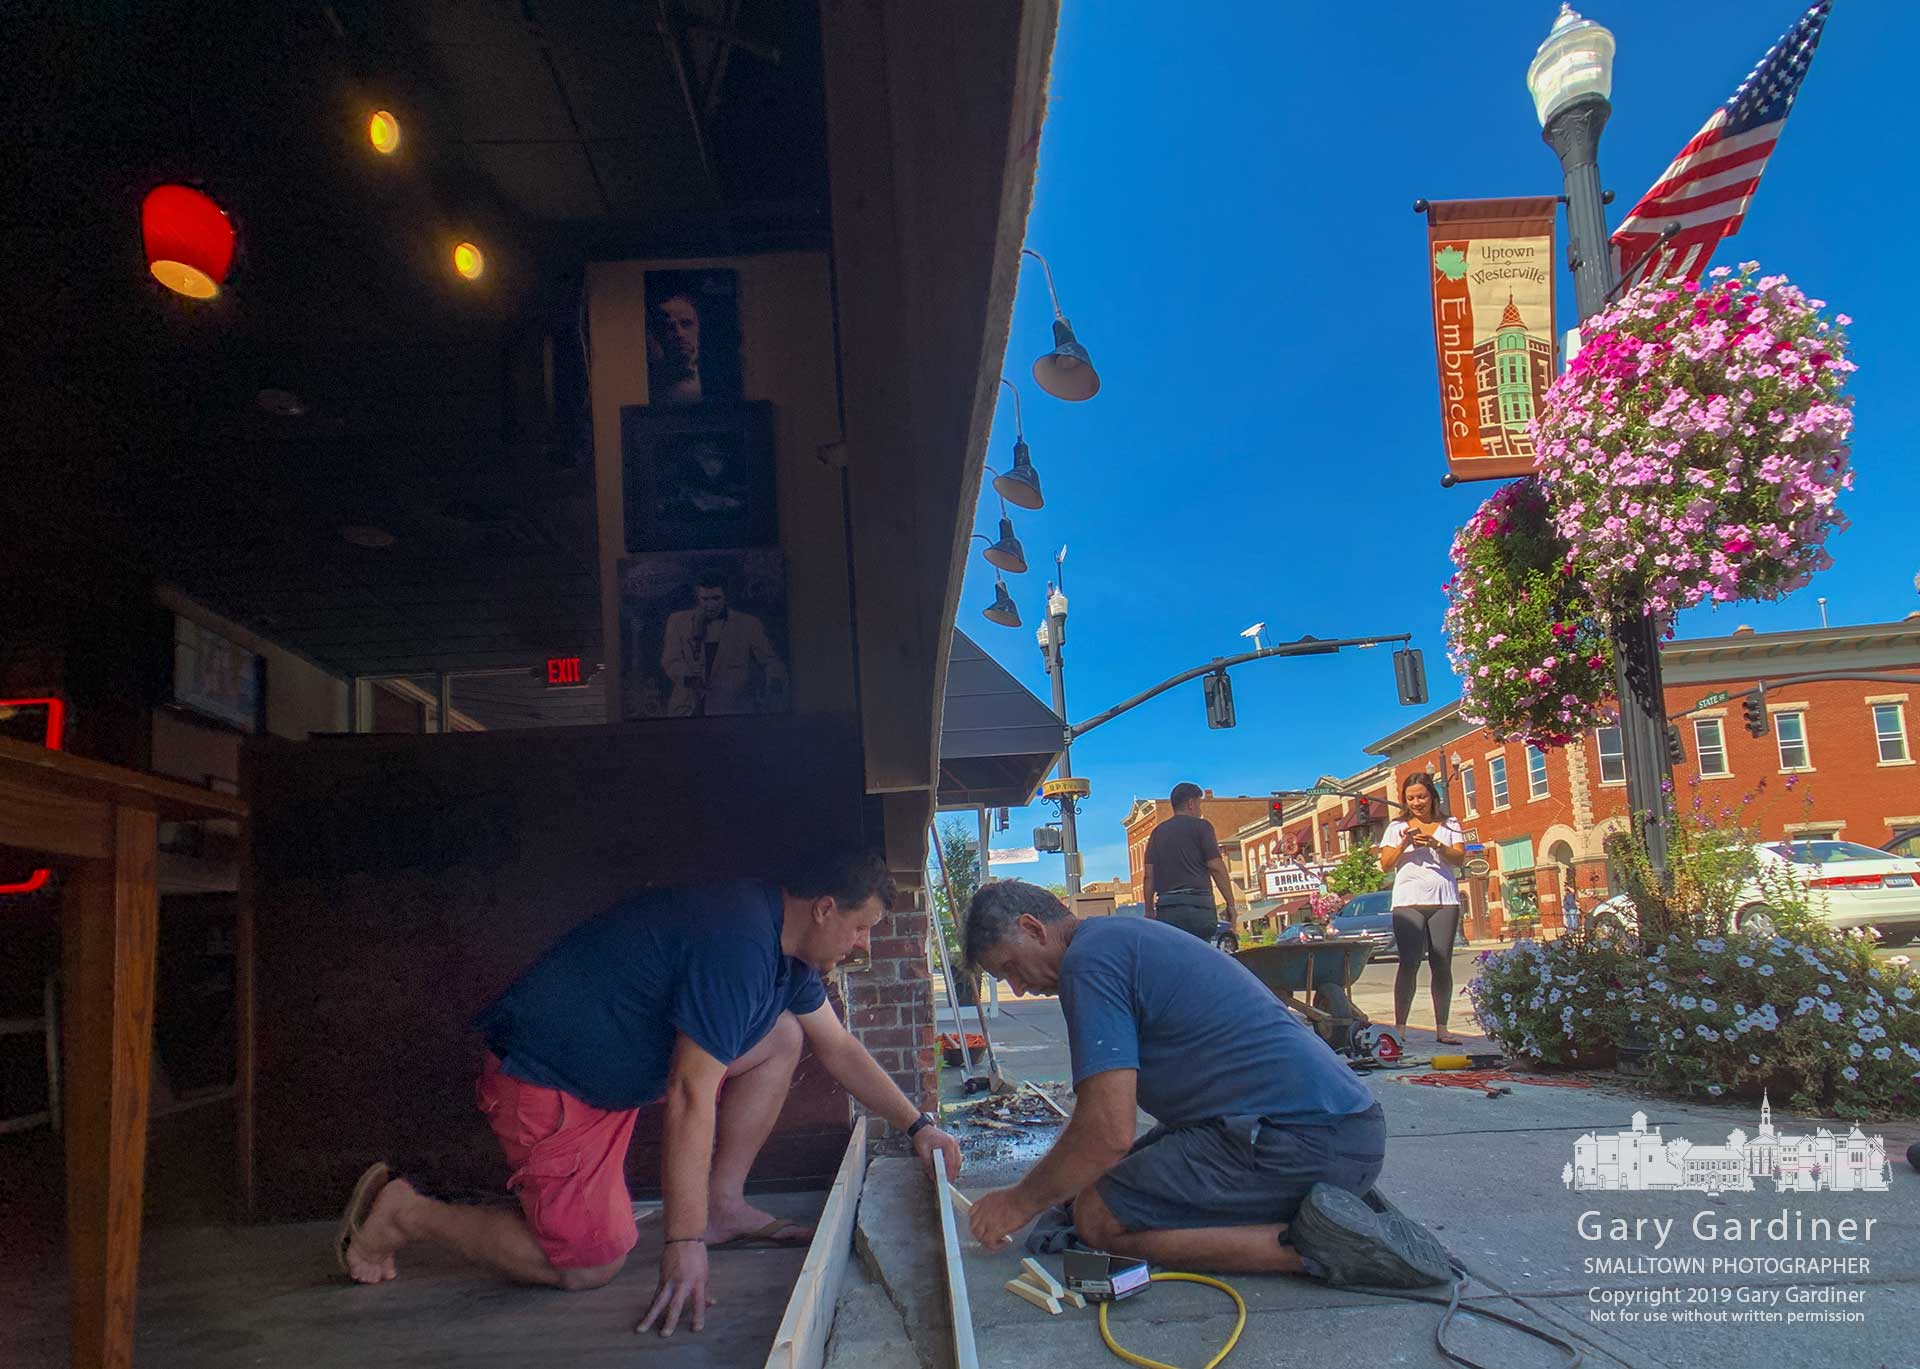 Mario Nedelkoski, left, talks with the carpenter building the form for a footer that will hold the new window being installed at Jimmy V's after the old window was destroyed in a car crash. My Final Photo for Sept. 17, 2019.